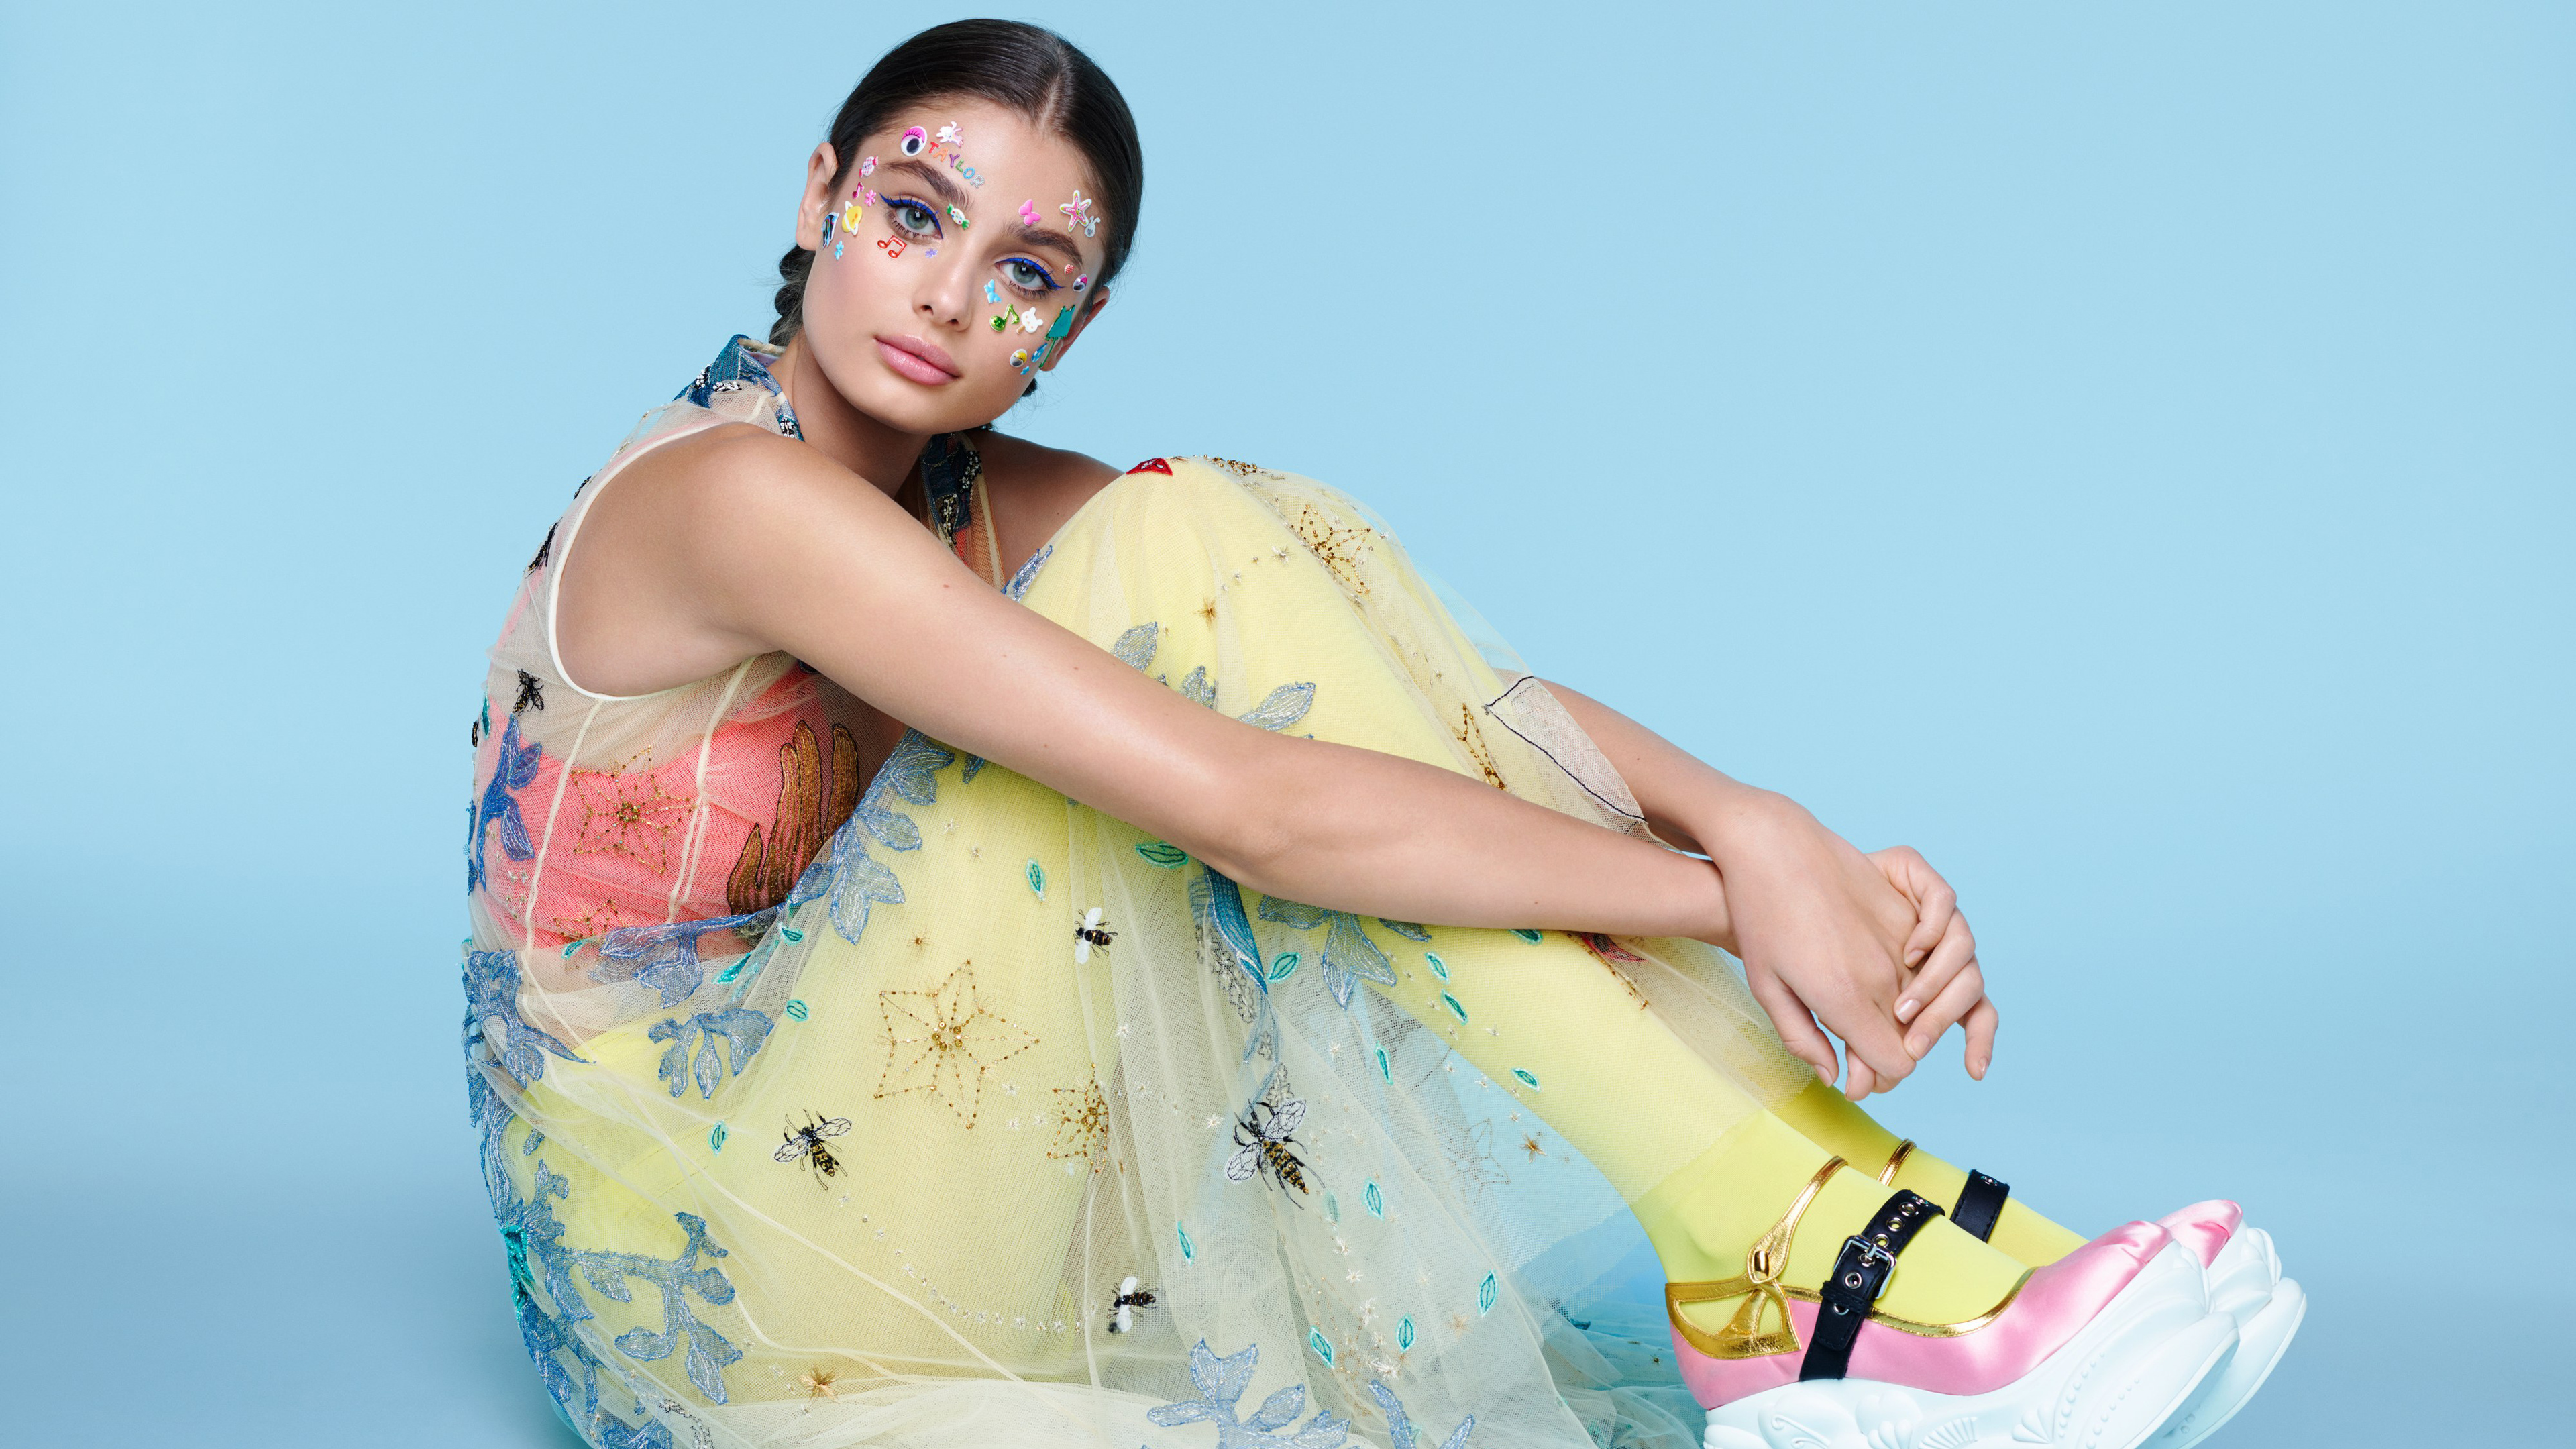 taylor hill 4k 2019 1558220764 - Taylor Hill 4k 2019 - taylor hill wallpapers, model wallpapers, hd-wallpapers, girls wallpapers, celebrities wallpapers, 4k-wallpapers